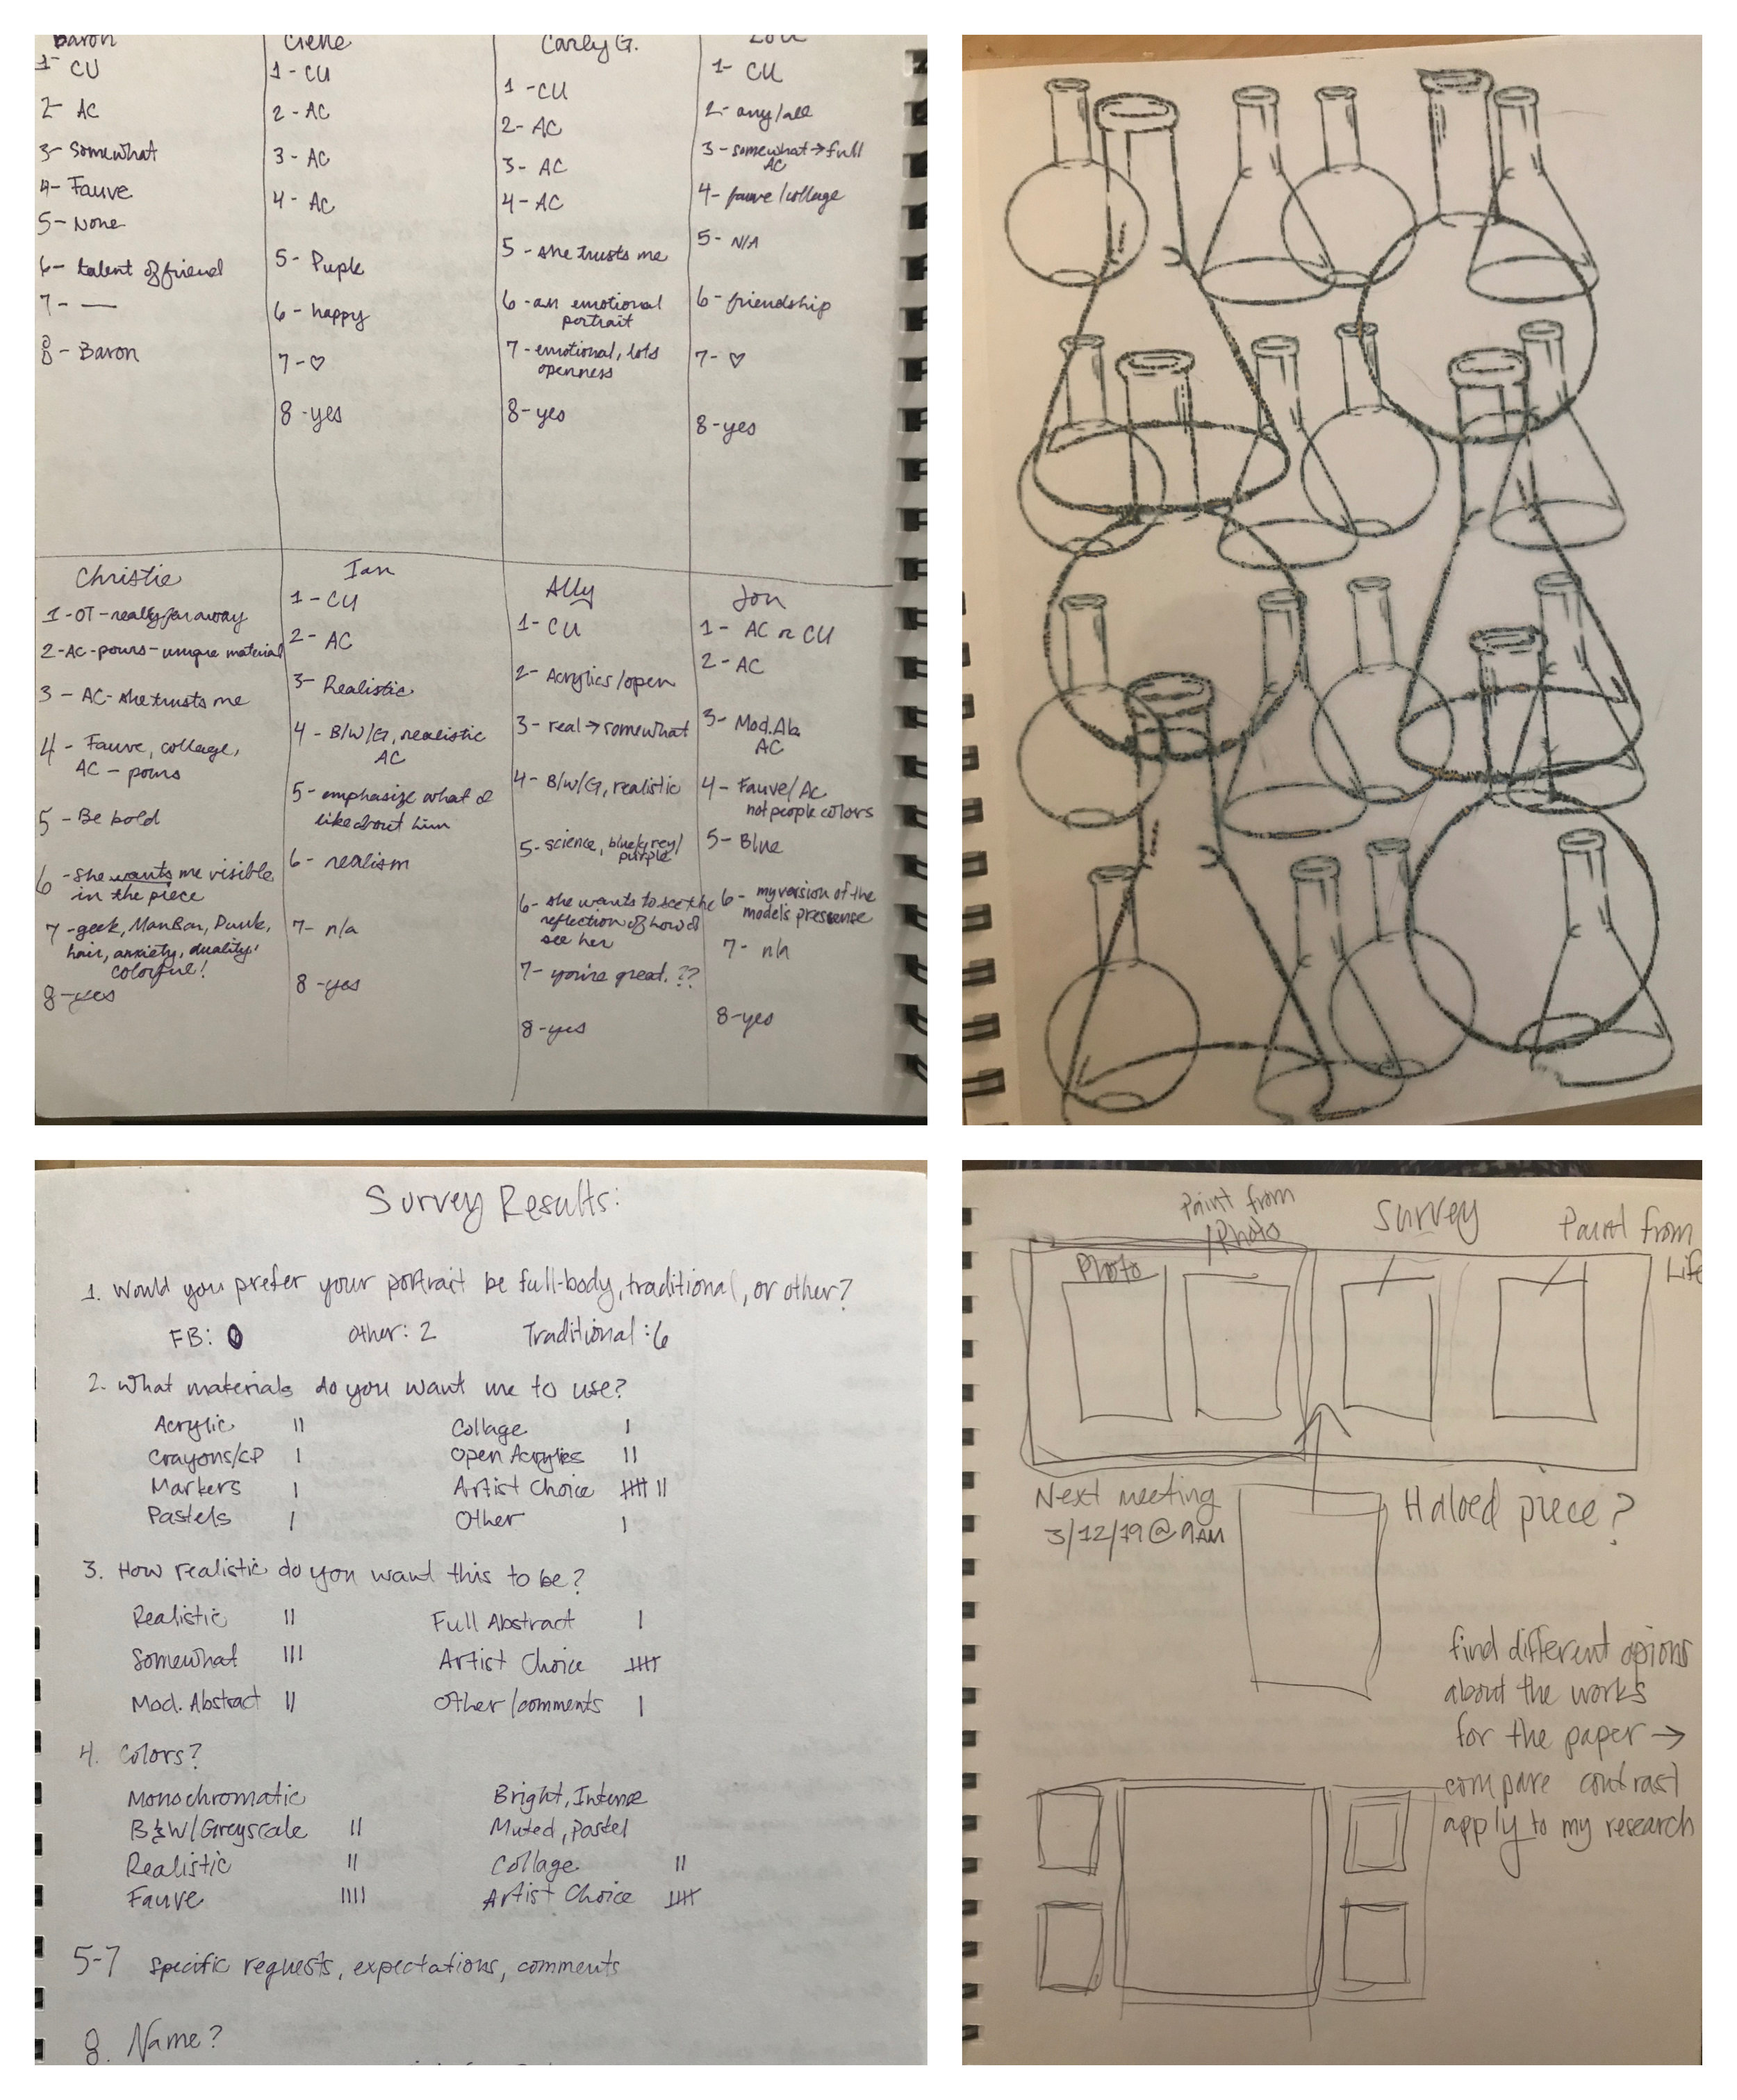 A few random pages from my sketch book and some digital collaging that I printed out as I try to figure out the logististics of hanging the Survey Series, and possible expansions for the series.